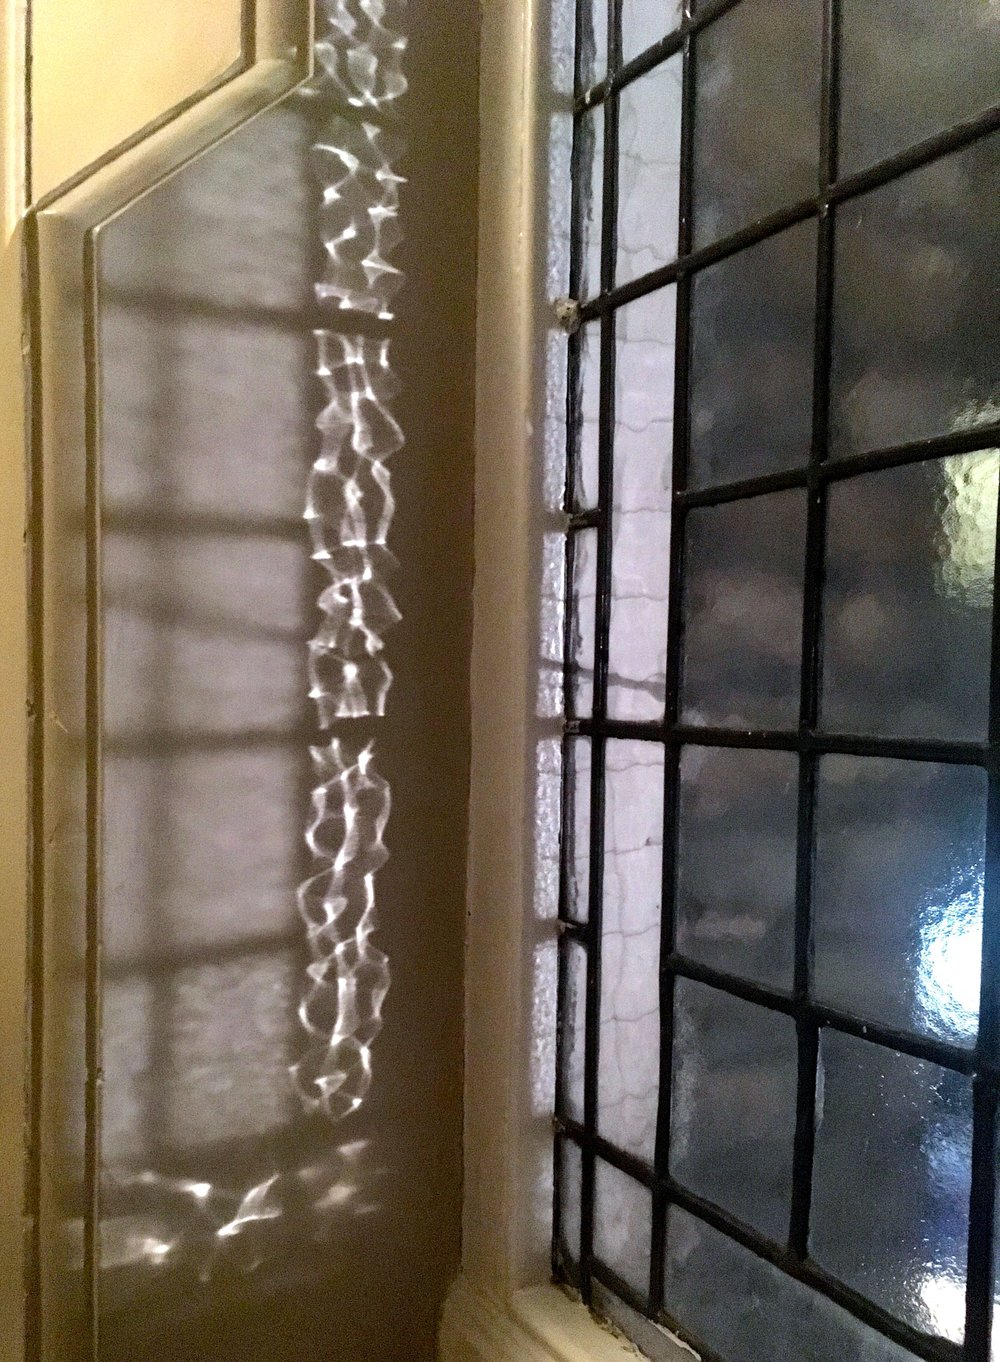 patterned light reflecting on the wall at St Ermin's hotel in London